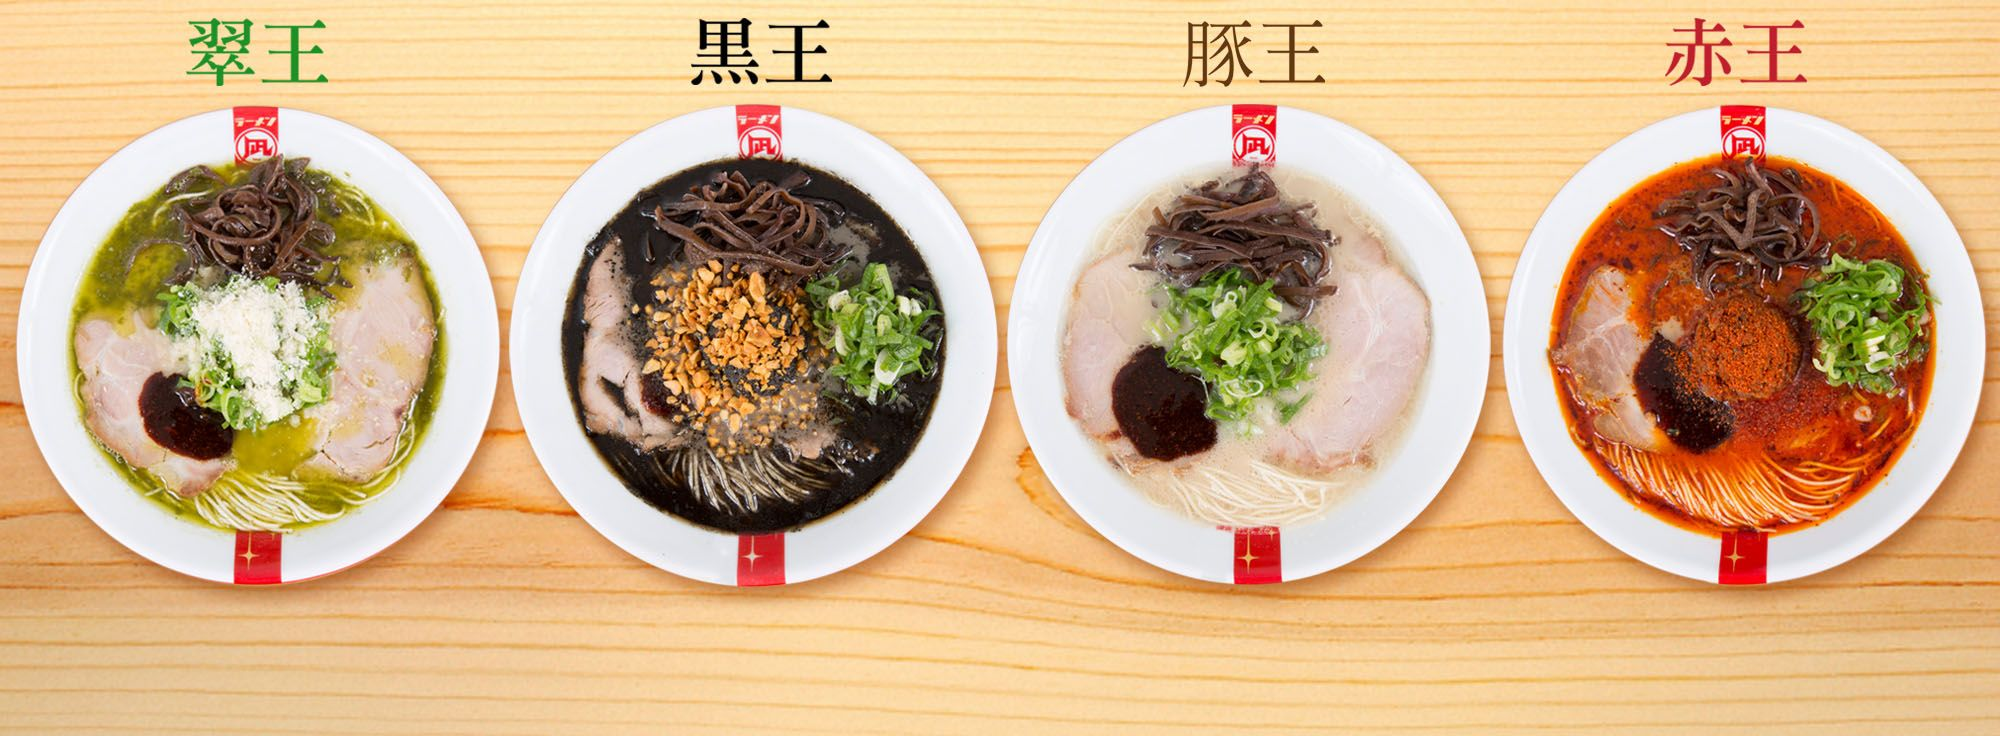 Are You A Ramen Nagi Fan? Then, You'll Be Glad To Hear This